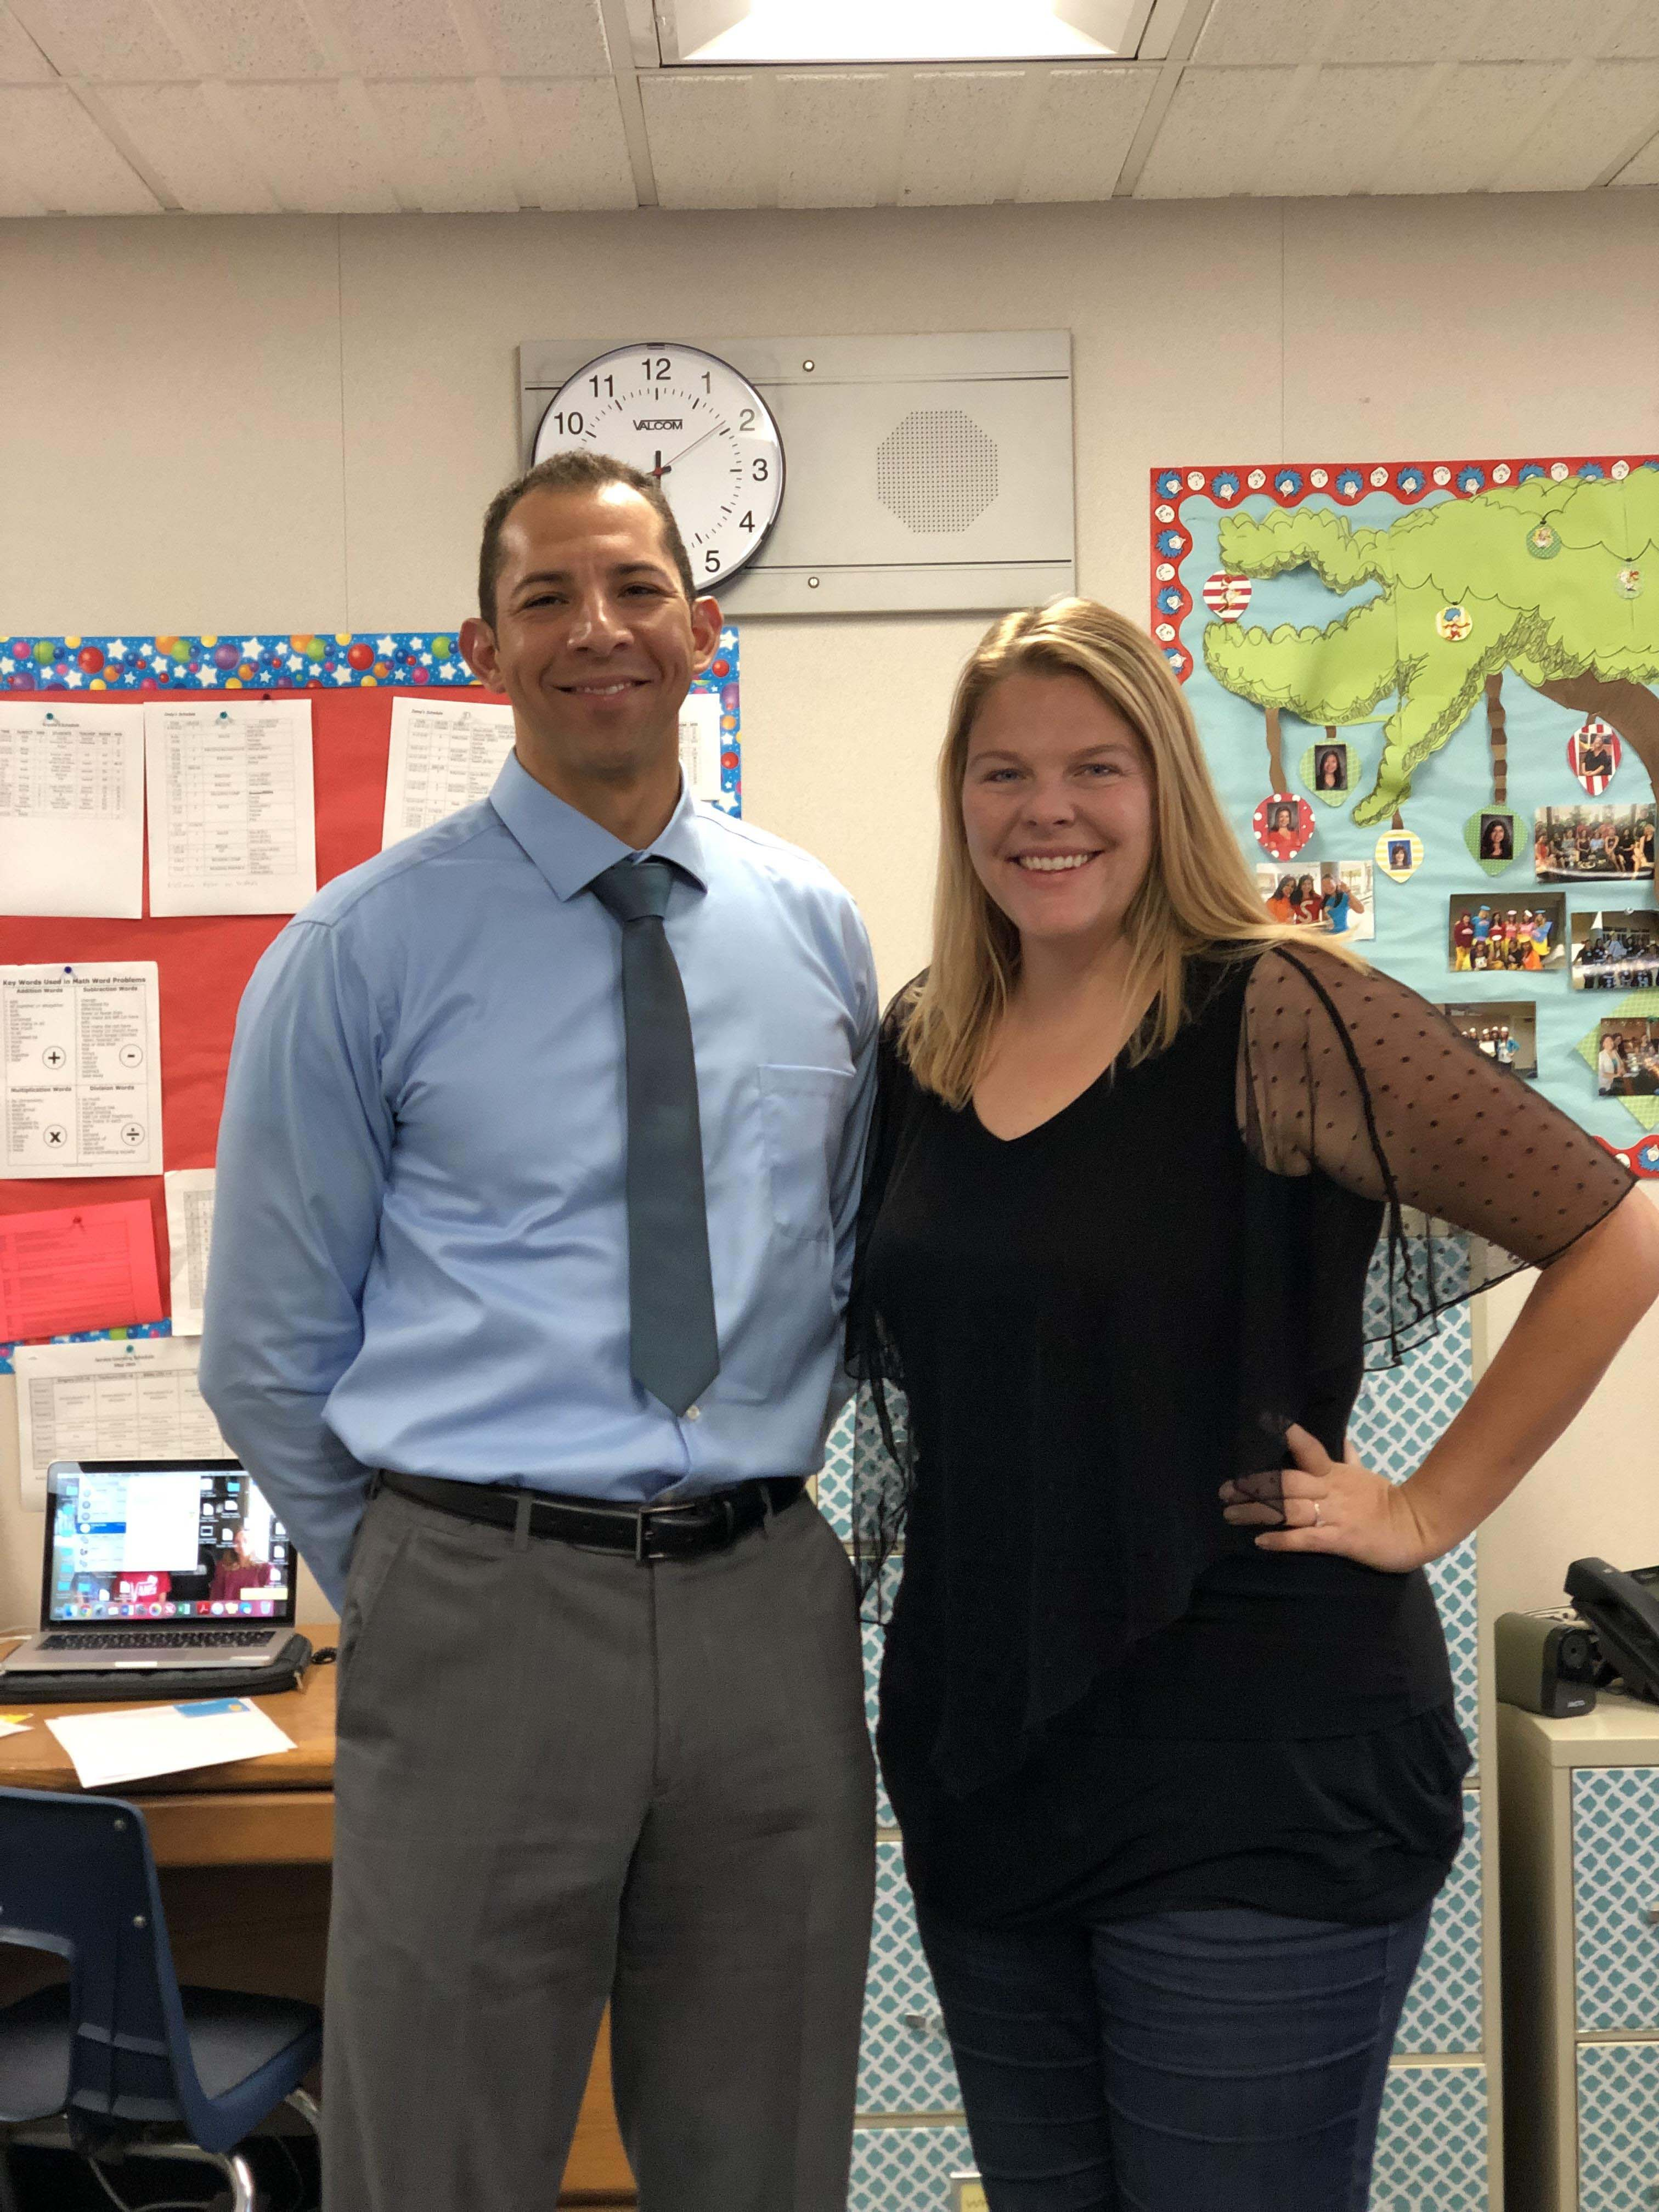 Jerry Voelker with Krystle Johnson in the classroom.